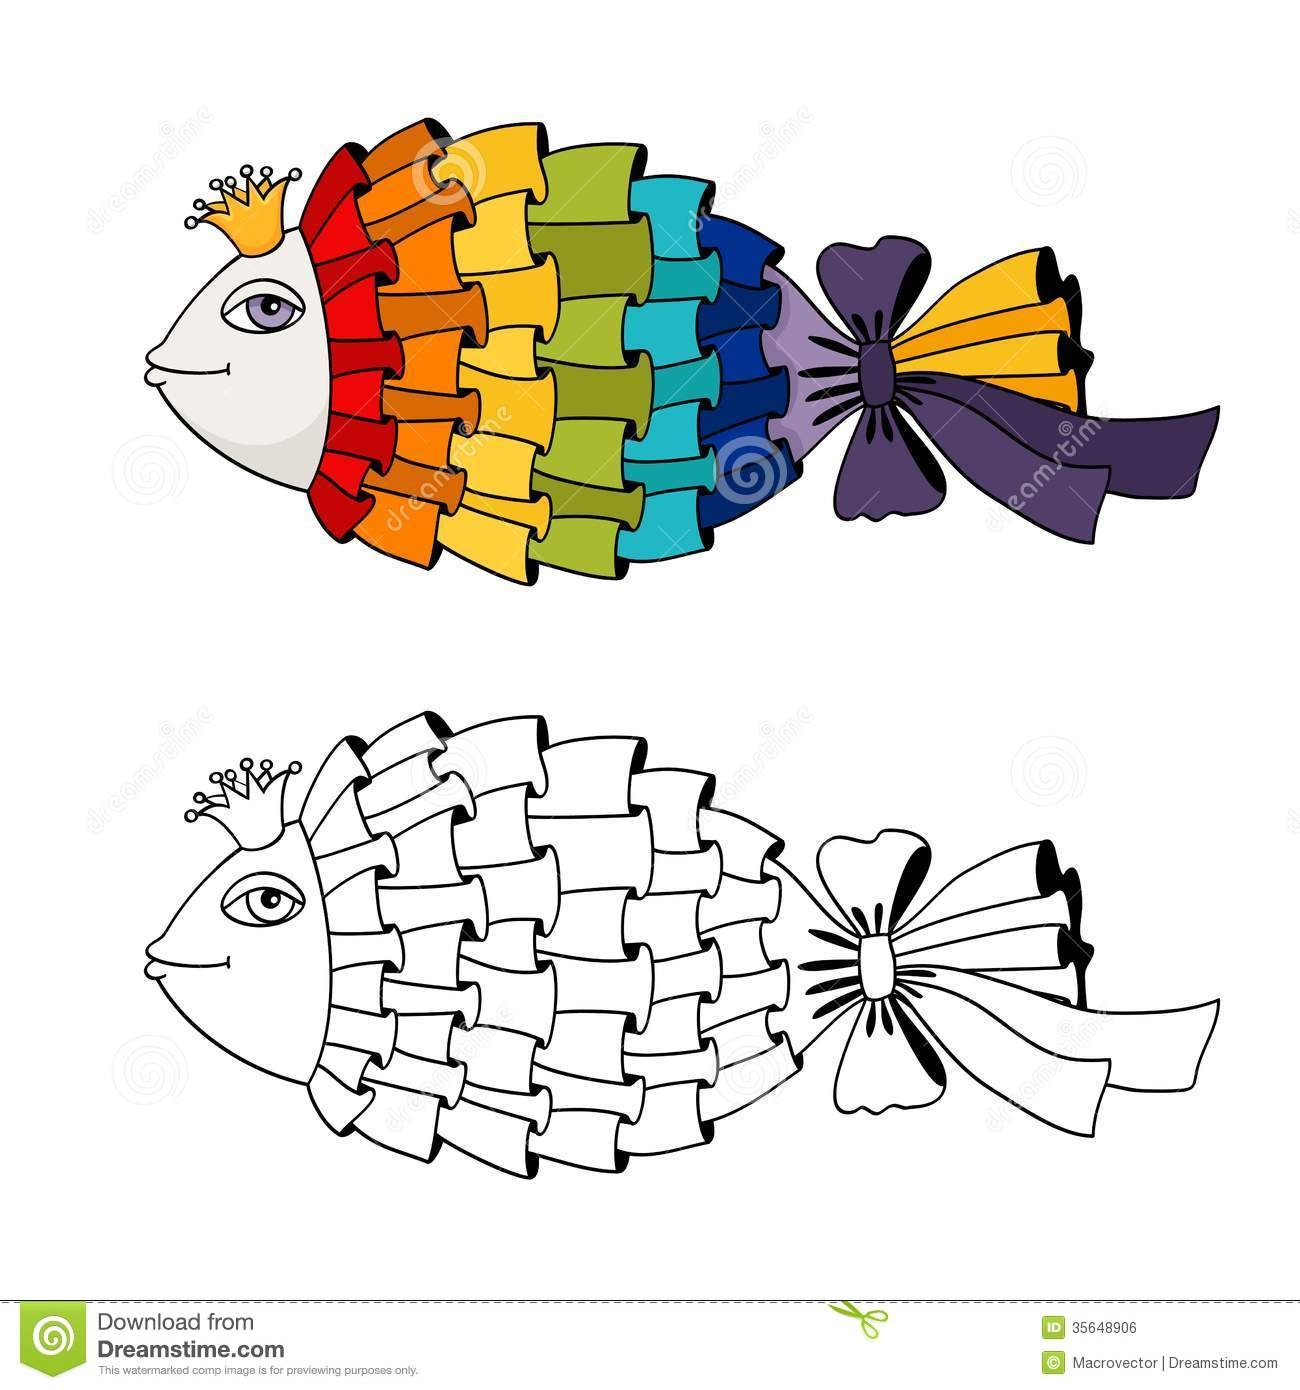 Rainbow Fish Coloring Page - Rainbow Fish Coloring Royalty Free Stock Image Image